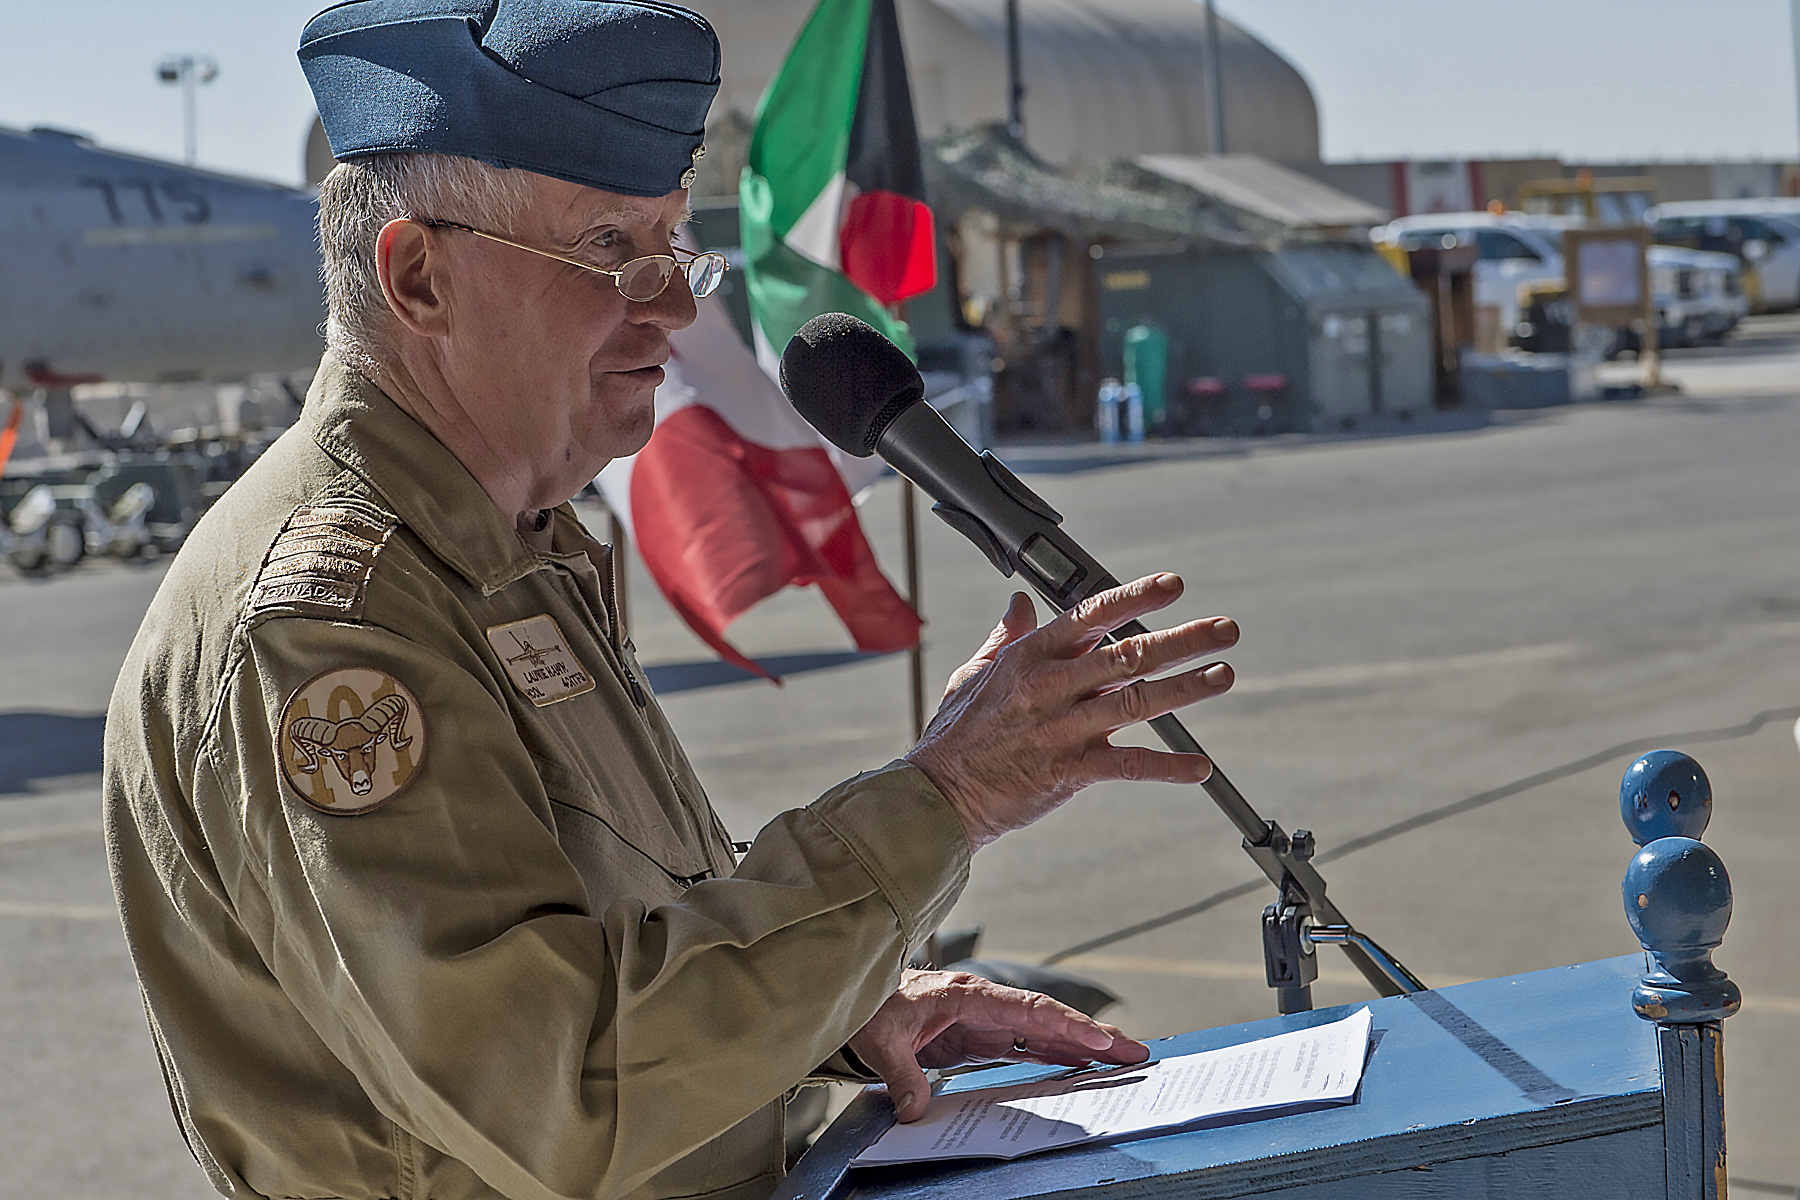 Honorary Colonel Laurie Hawn, the new honorary colonel of 401 Tactical Fighter Squadron, addresses squadron members deployed on Operation Impact in Kuwait, during his investiture ceremony on January 10, 2016.